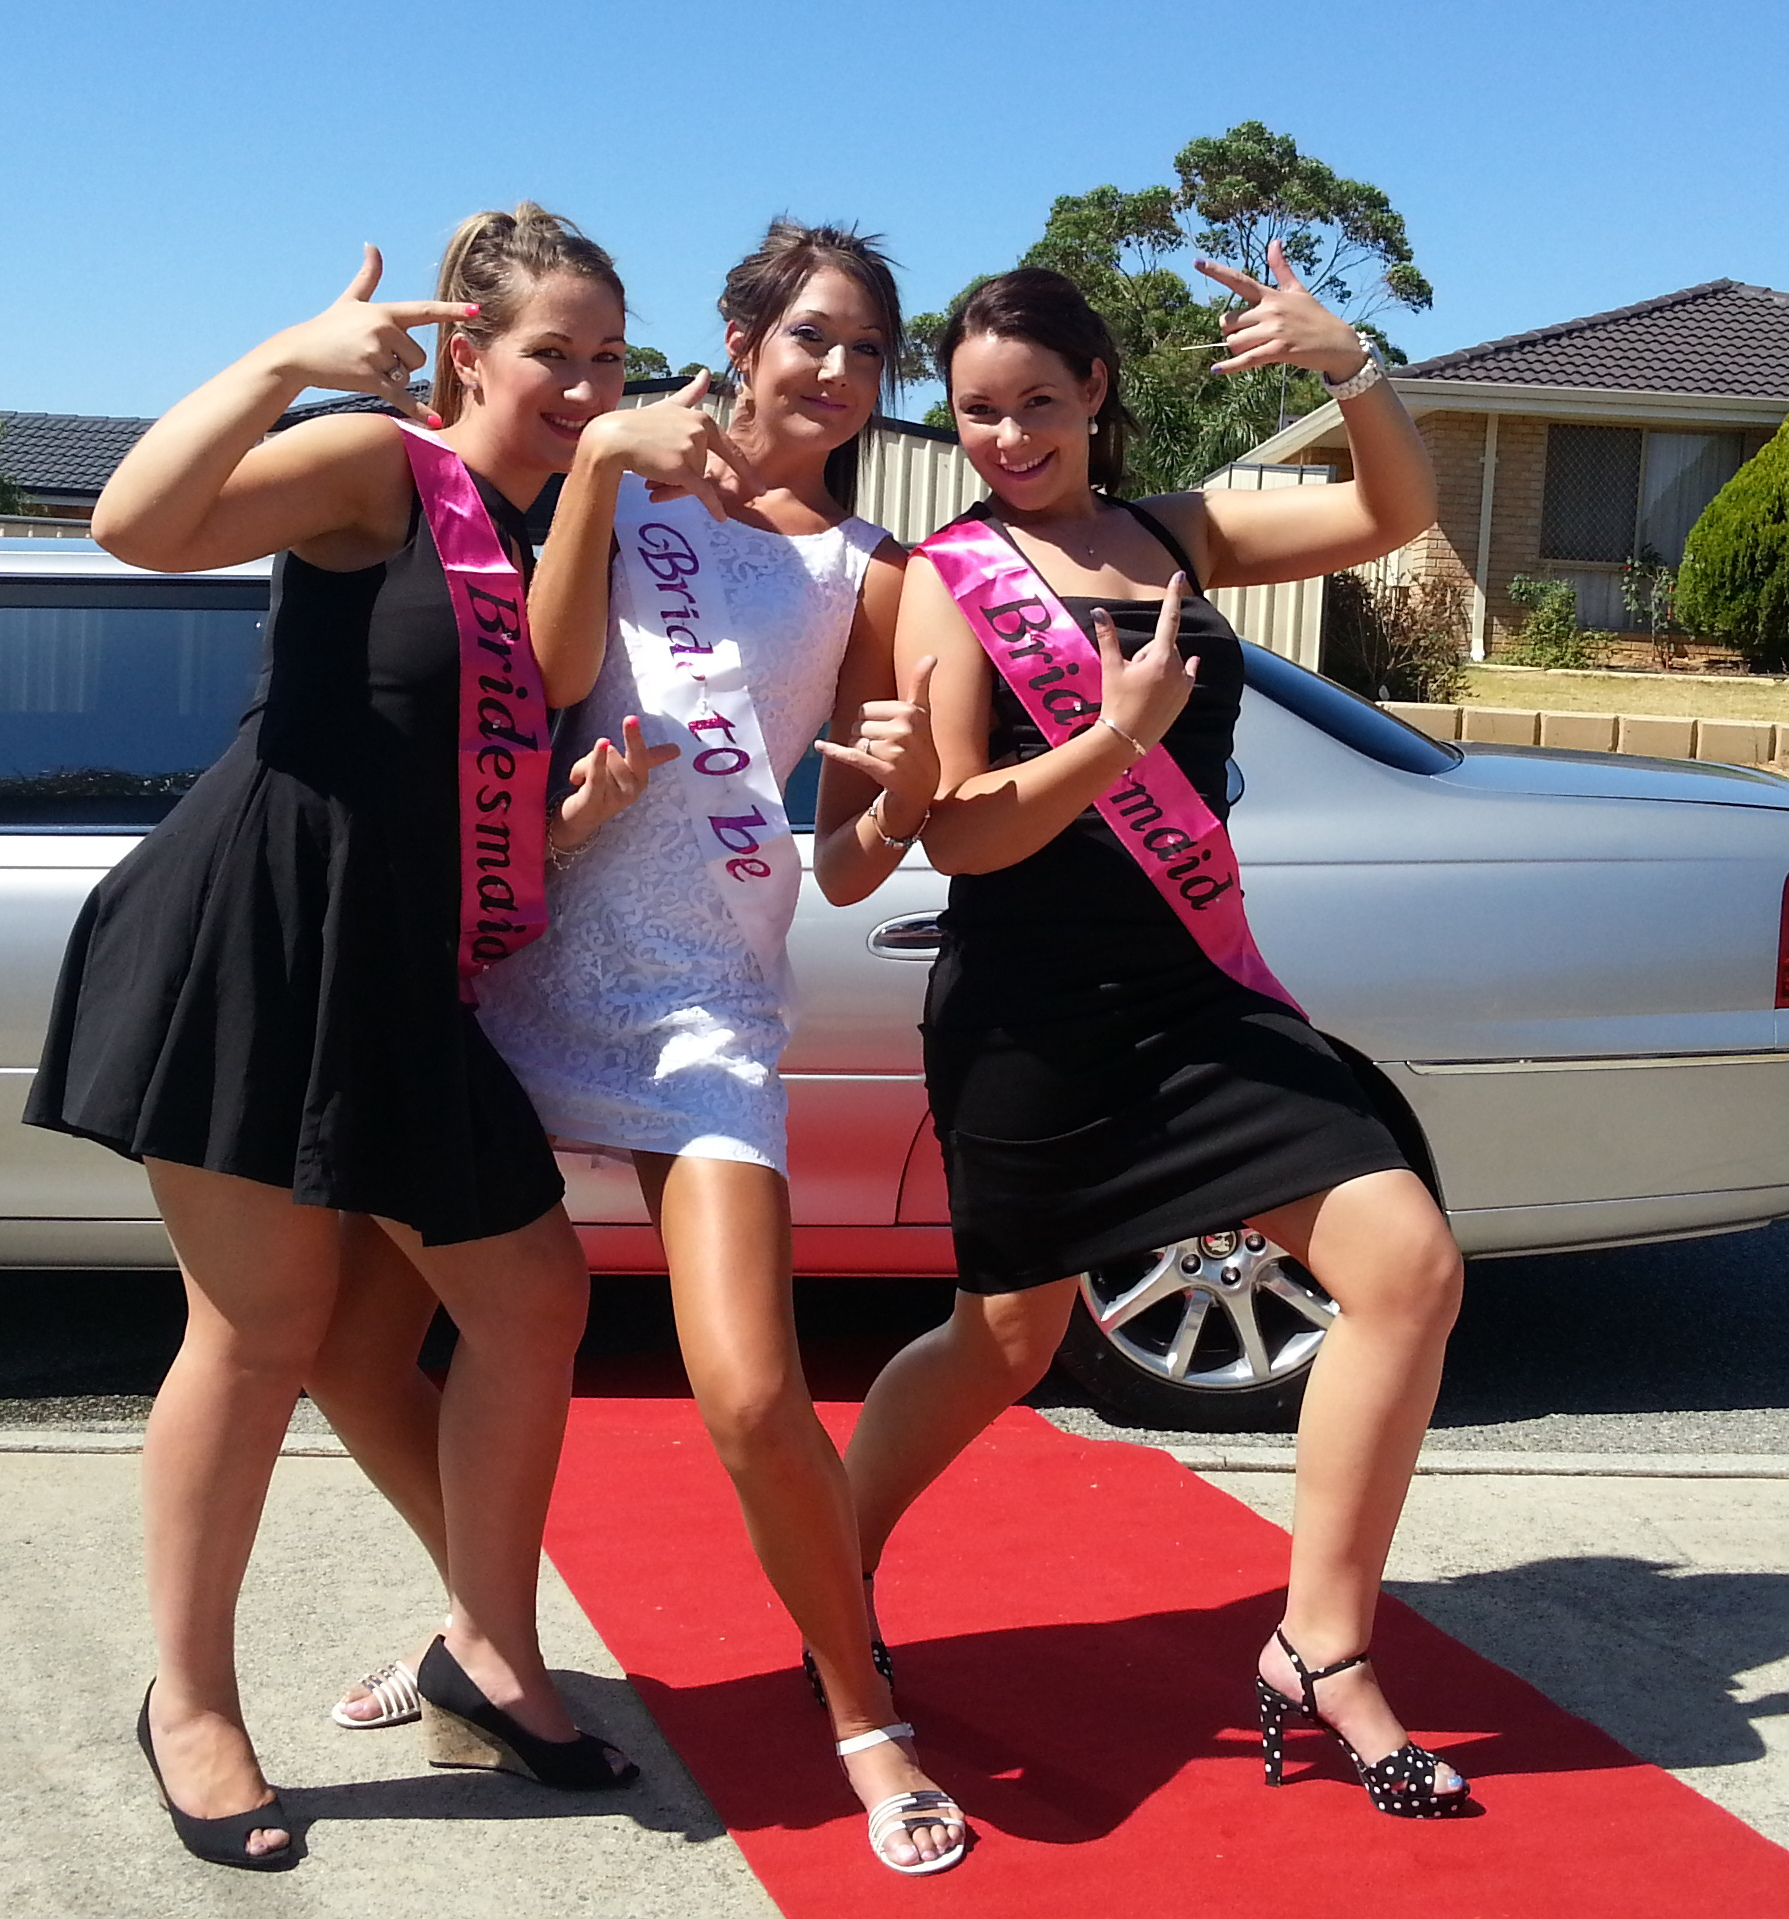 Wedding limousine hire Perth helping these lovely ladies celebrate Courtney's upcoming wedding. Perth Limo Hire also celebrates school balls and winery tours